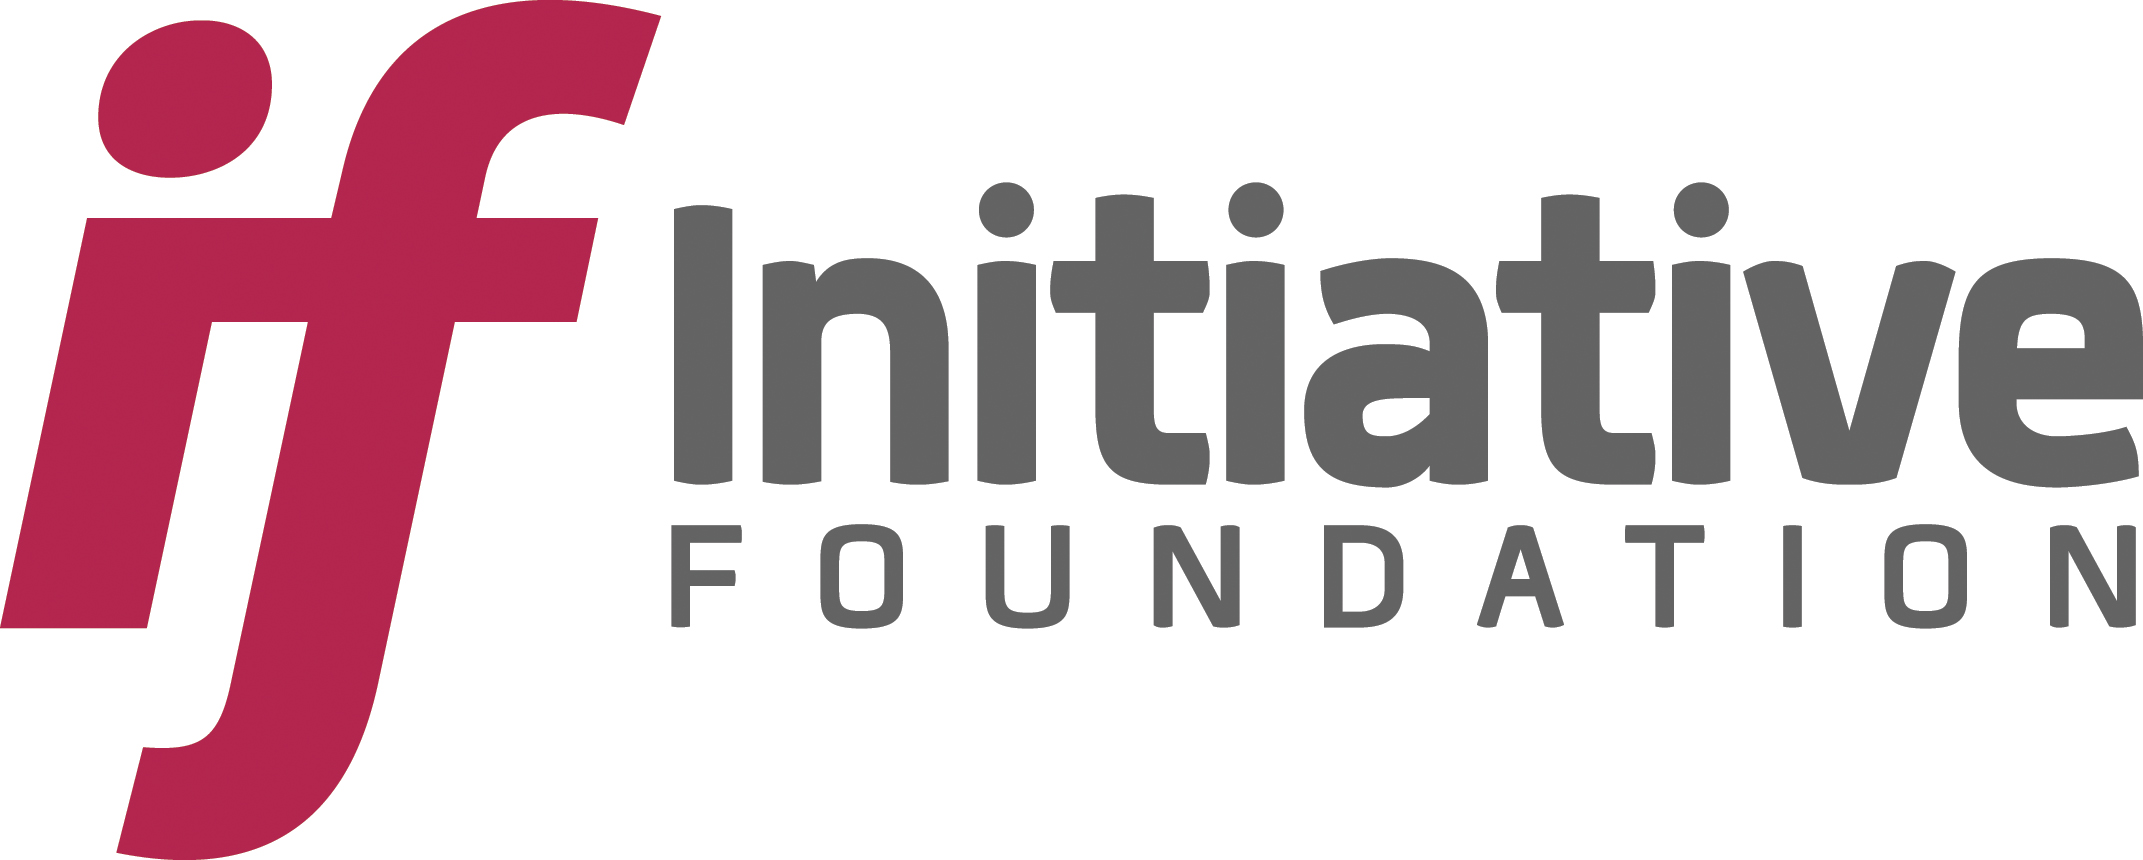 The Initiative Foundation